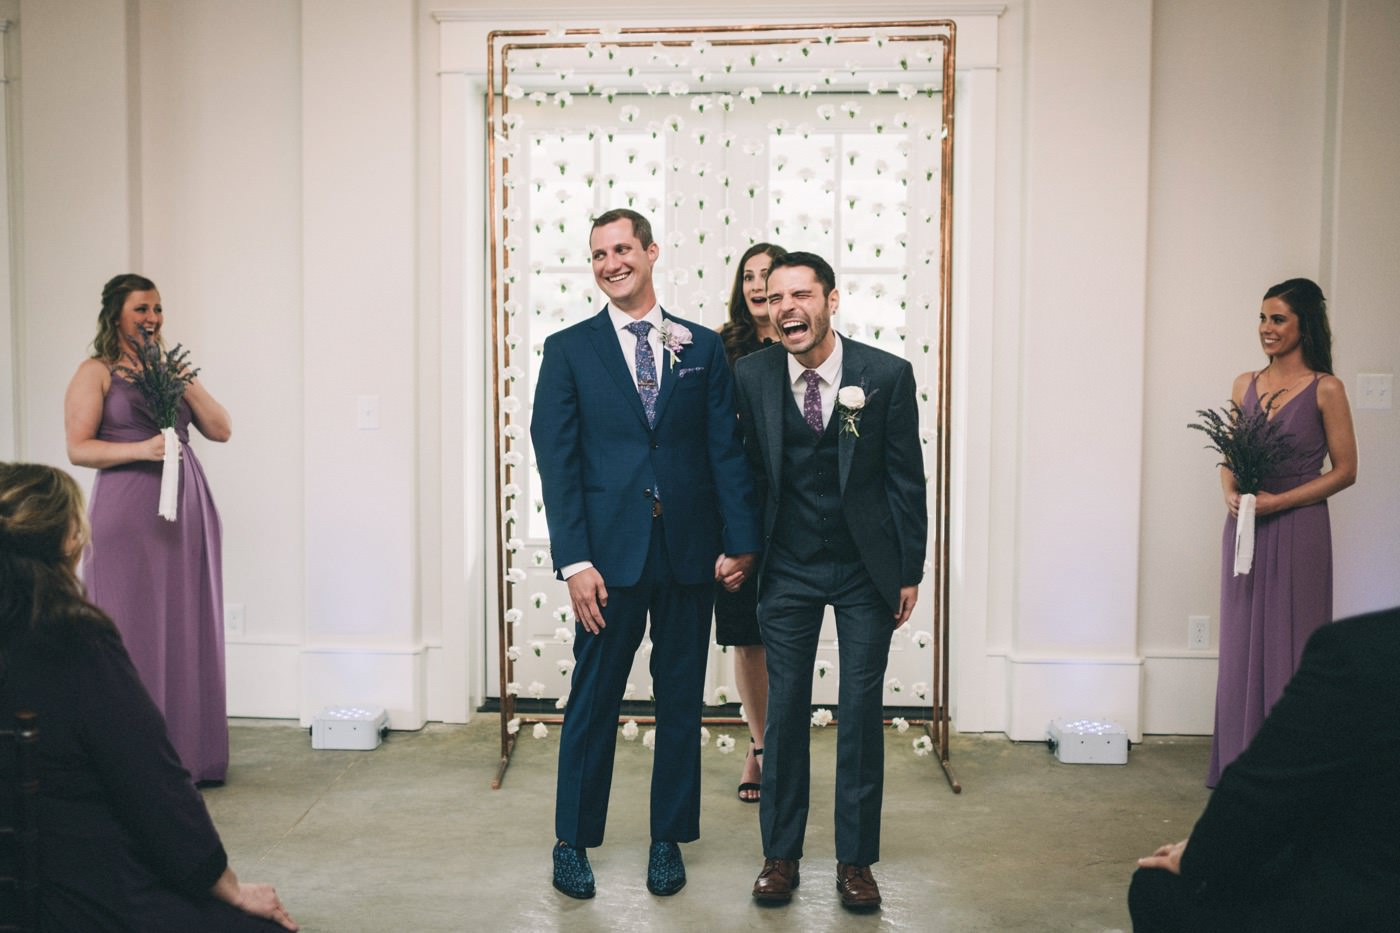 Will-Nate-Louisville-LGBTQ-Pride-Month-Kentucky-Wedding-By-Sarah-Katherine-Davis-Photograpy0027.JPG